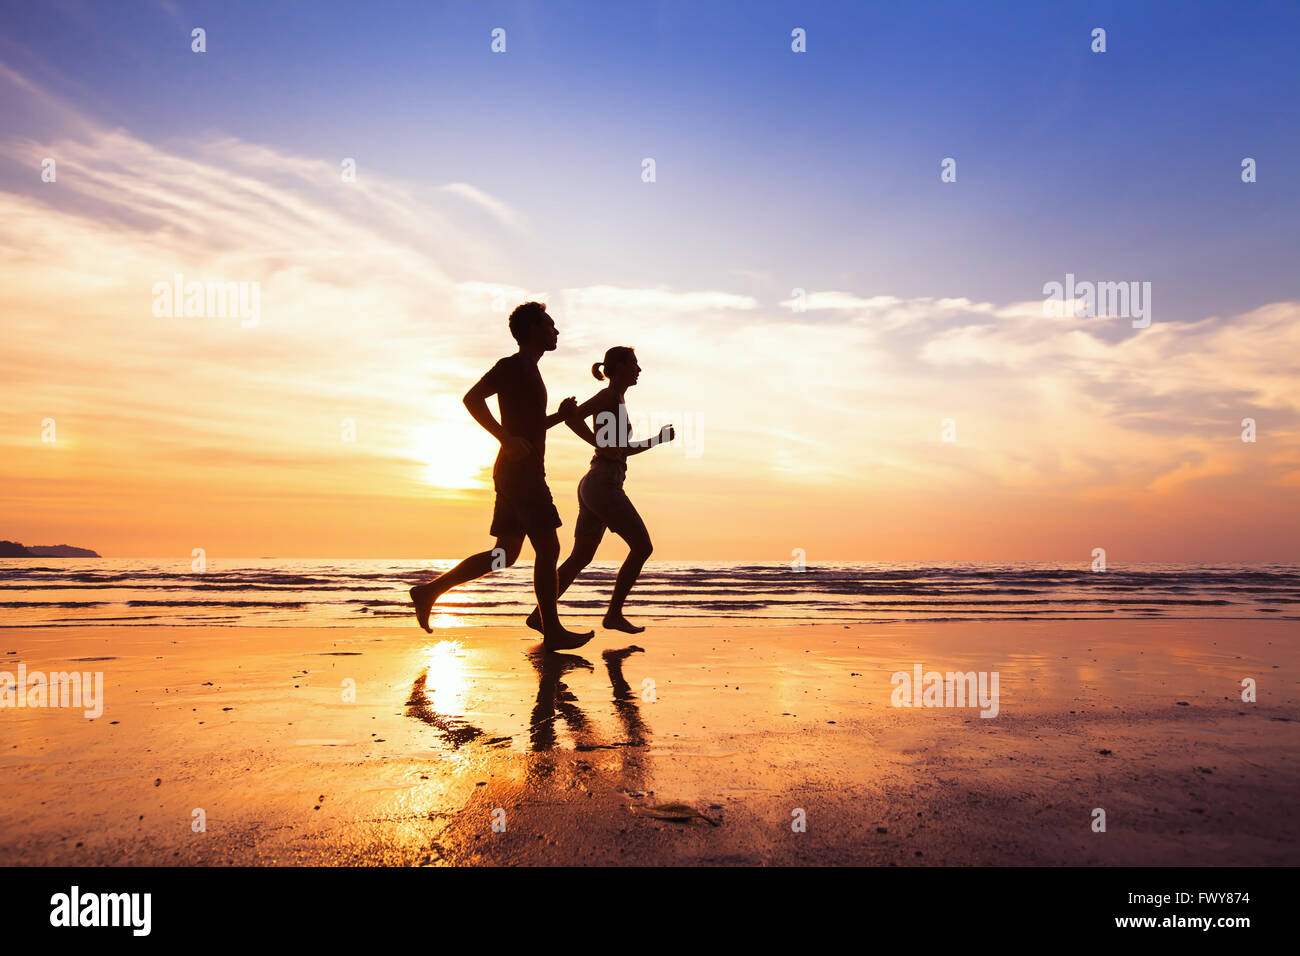 sport and healthy lifestyle, two people jogging at sunset on the beach - Stock Image